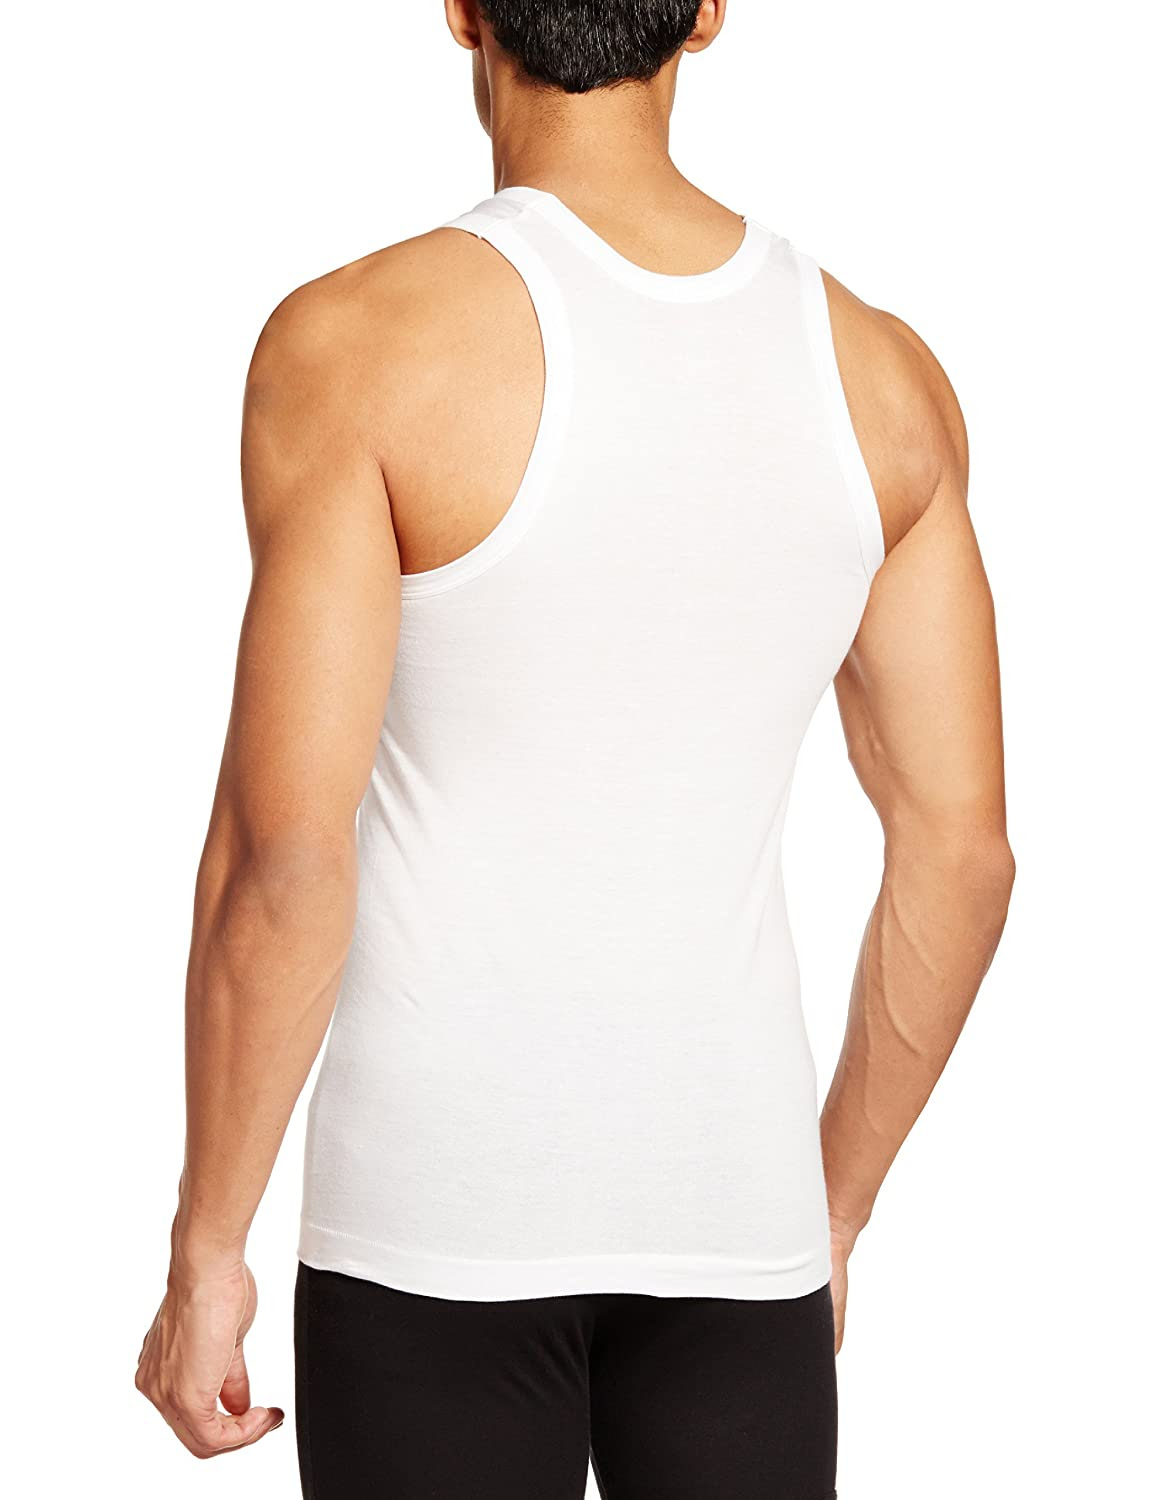 Deals on Rupa Frontline Men's Cotton Vests (Pack of 2)